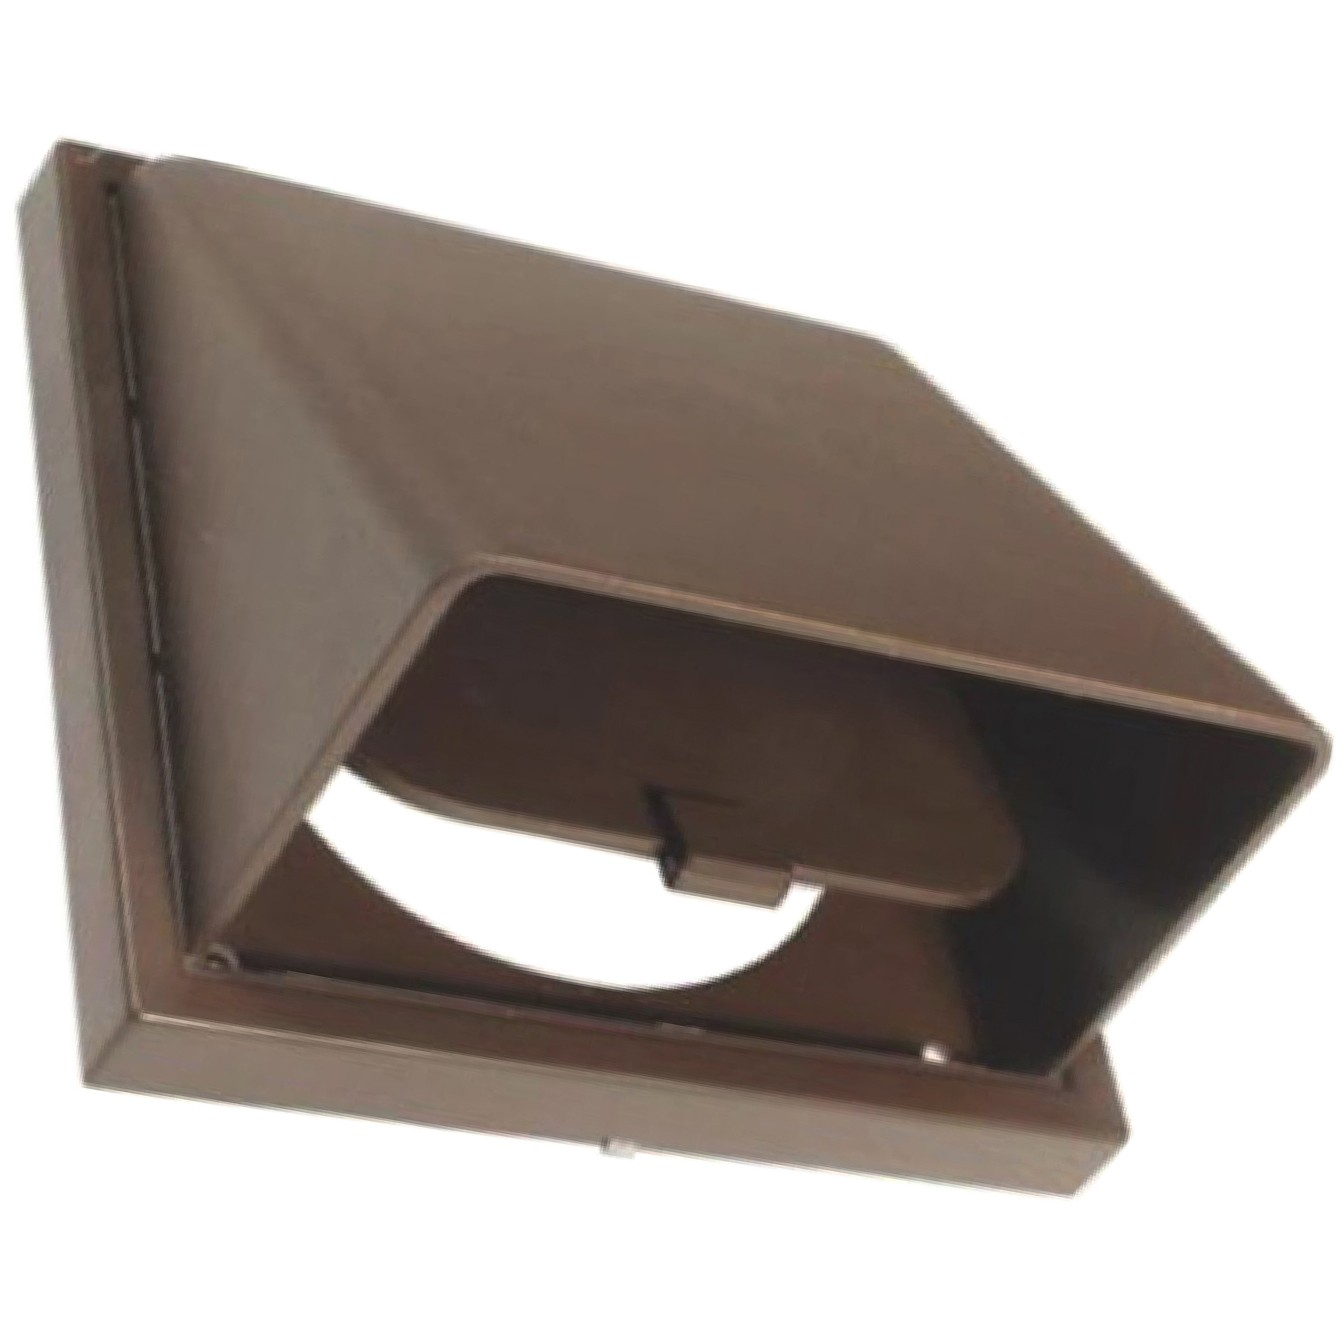 Manrose Round Ducting Pipe Wall Hood Cowled Outlet - Brown, 100mm